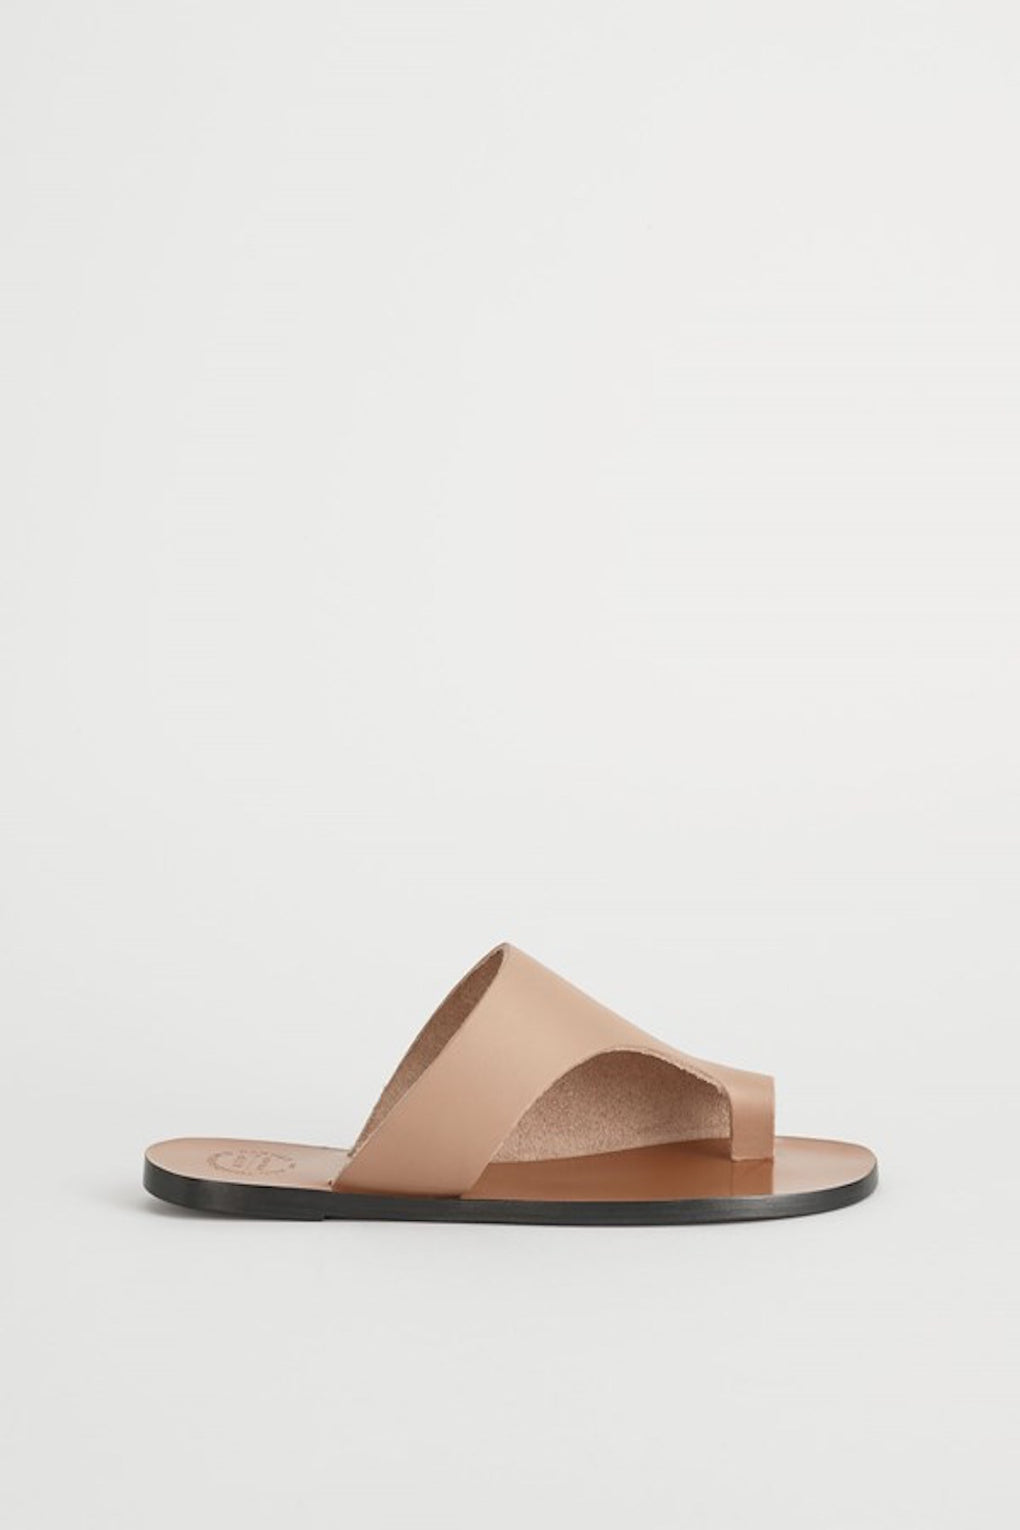 ATP Atelier-Rosa Sandals-vegetable tanned leather sandals-summer sandals-Idun-St. Paul